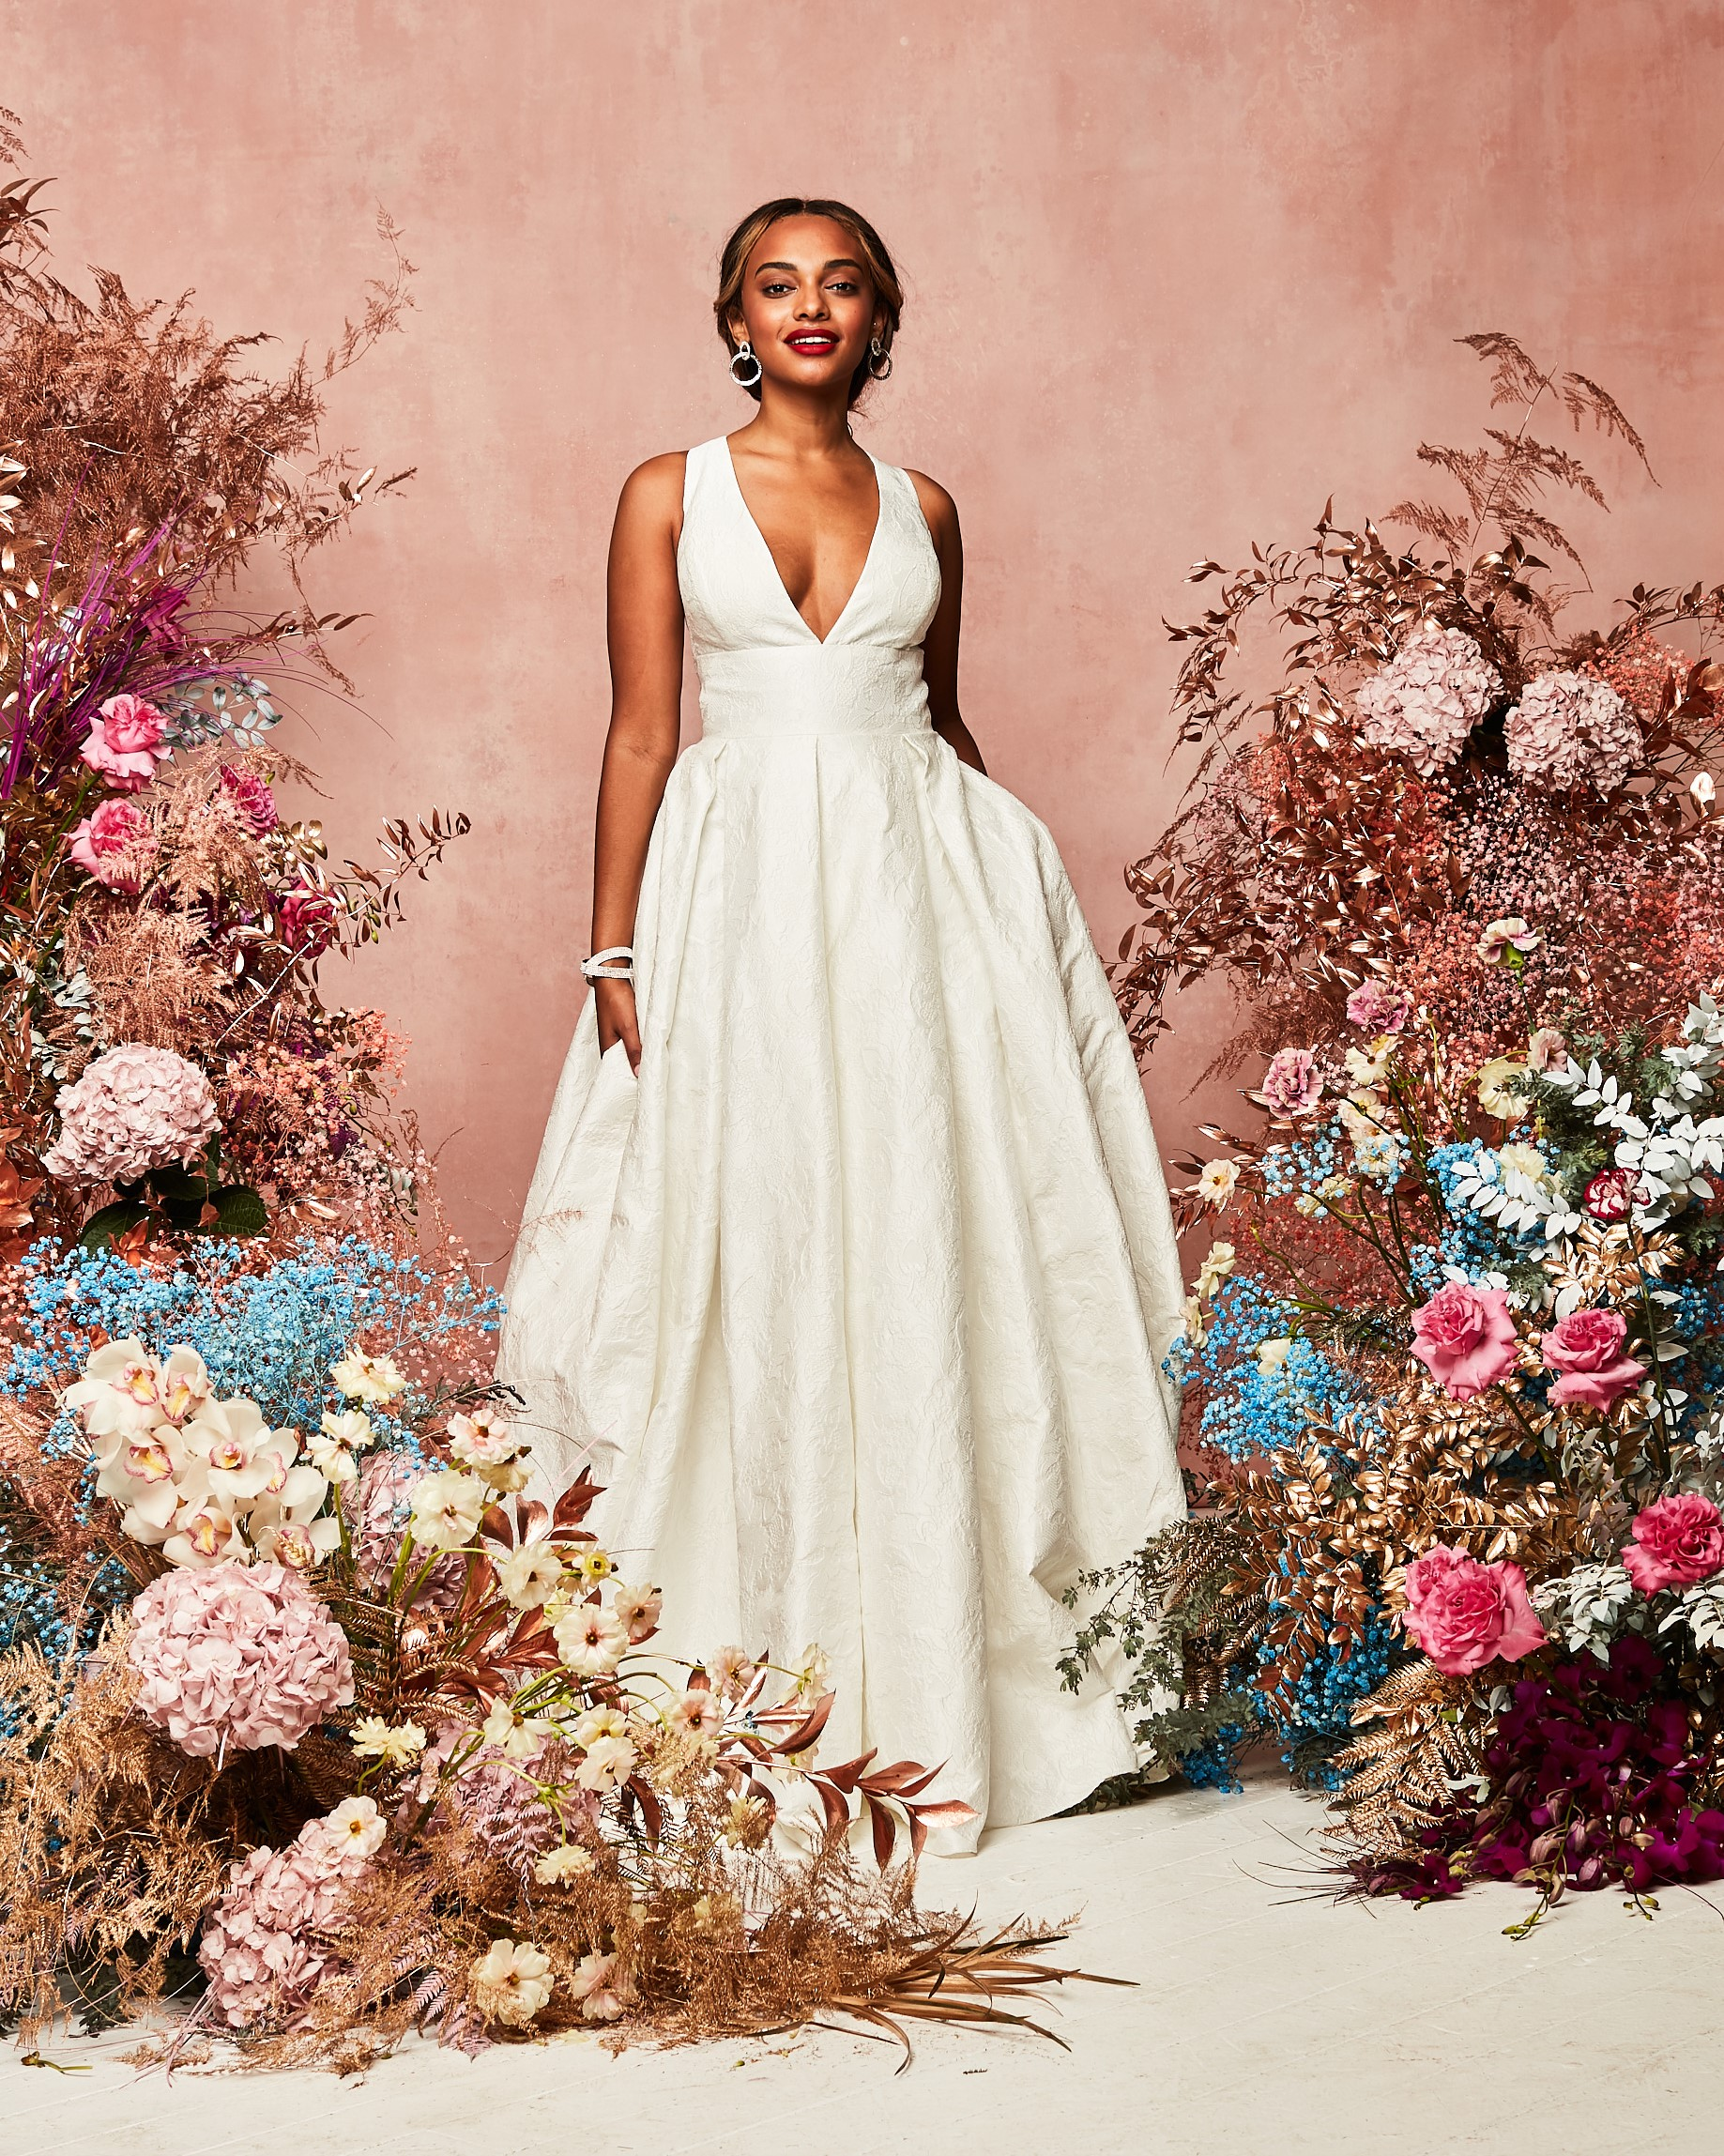 A deep V white bridal gown from david's bridal spring 2021 collection